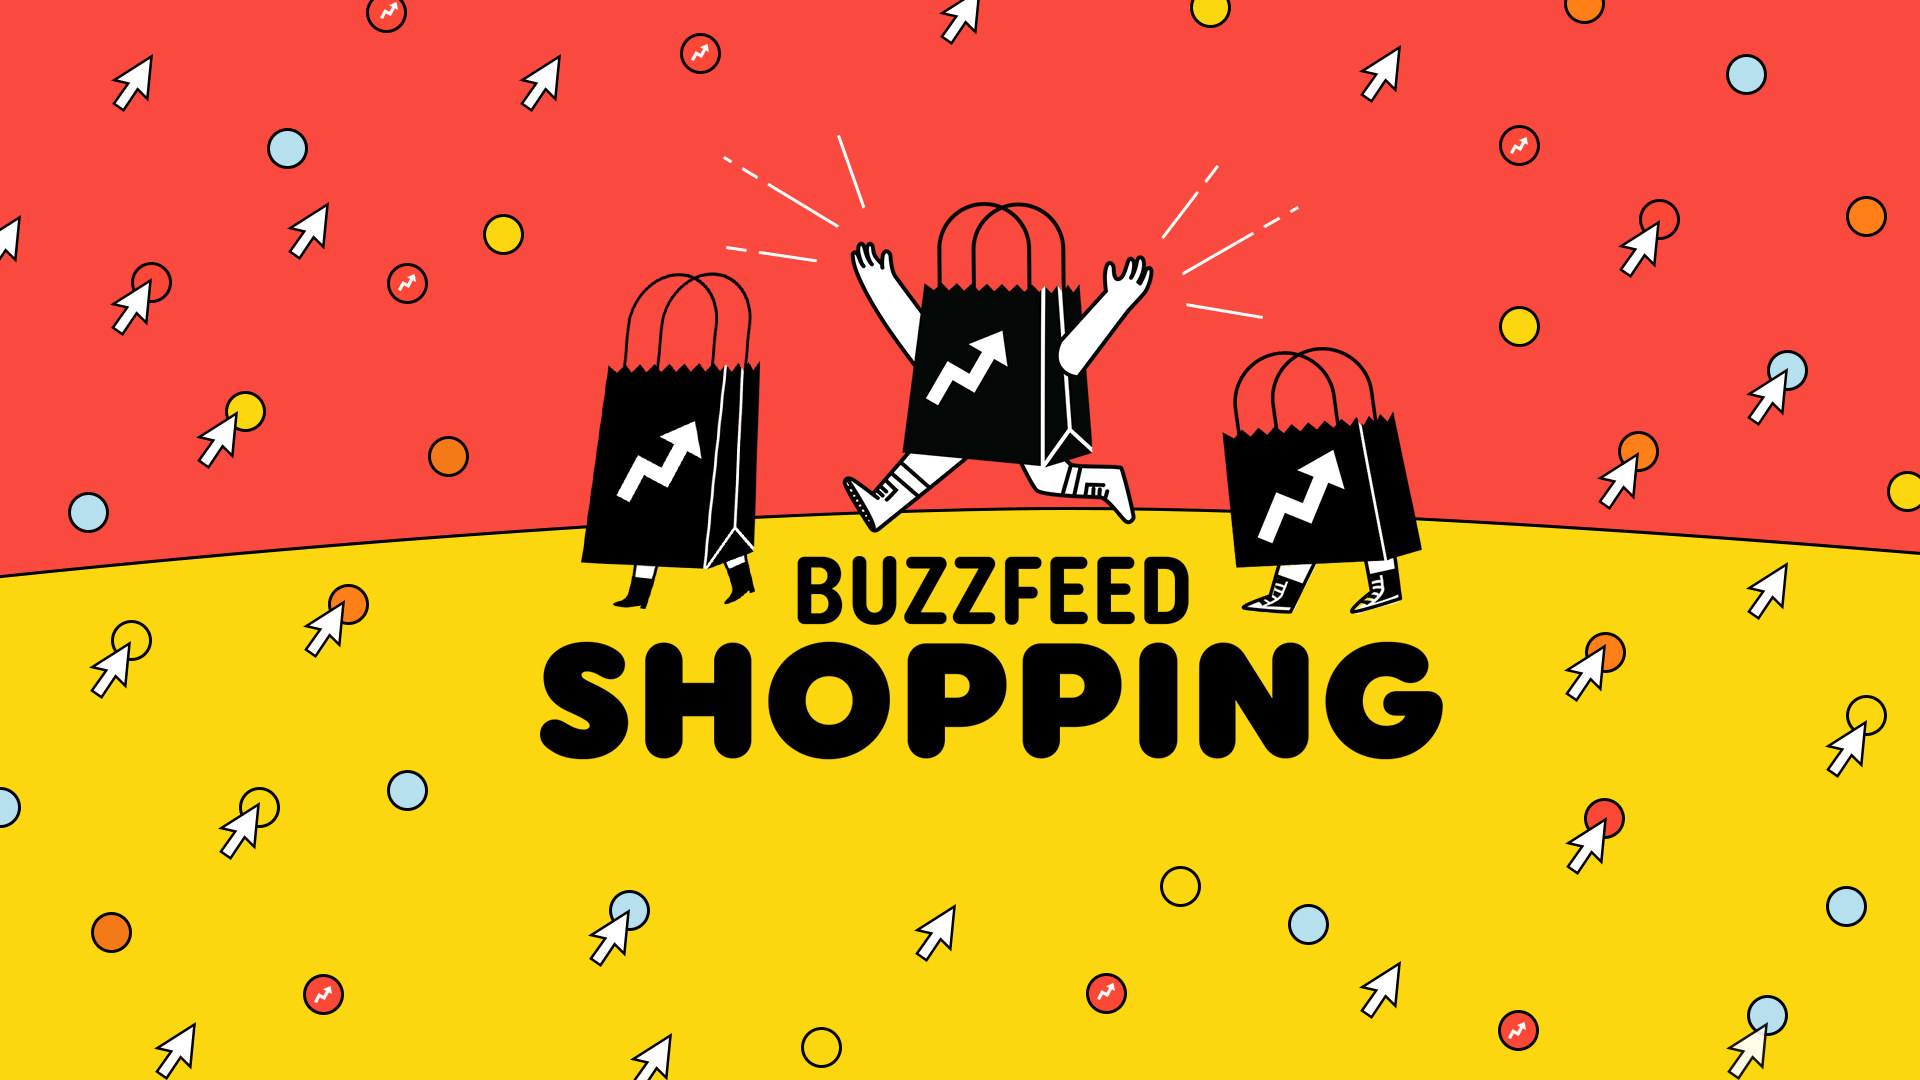 The BuzzFeed Shopping logo featuring illustrations of dancing shopping bags